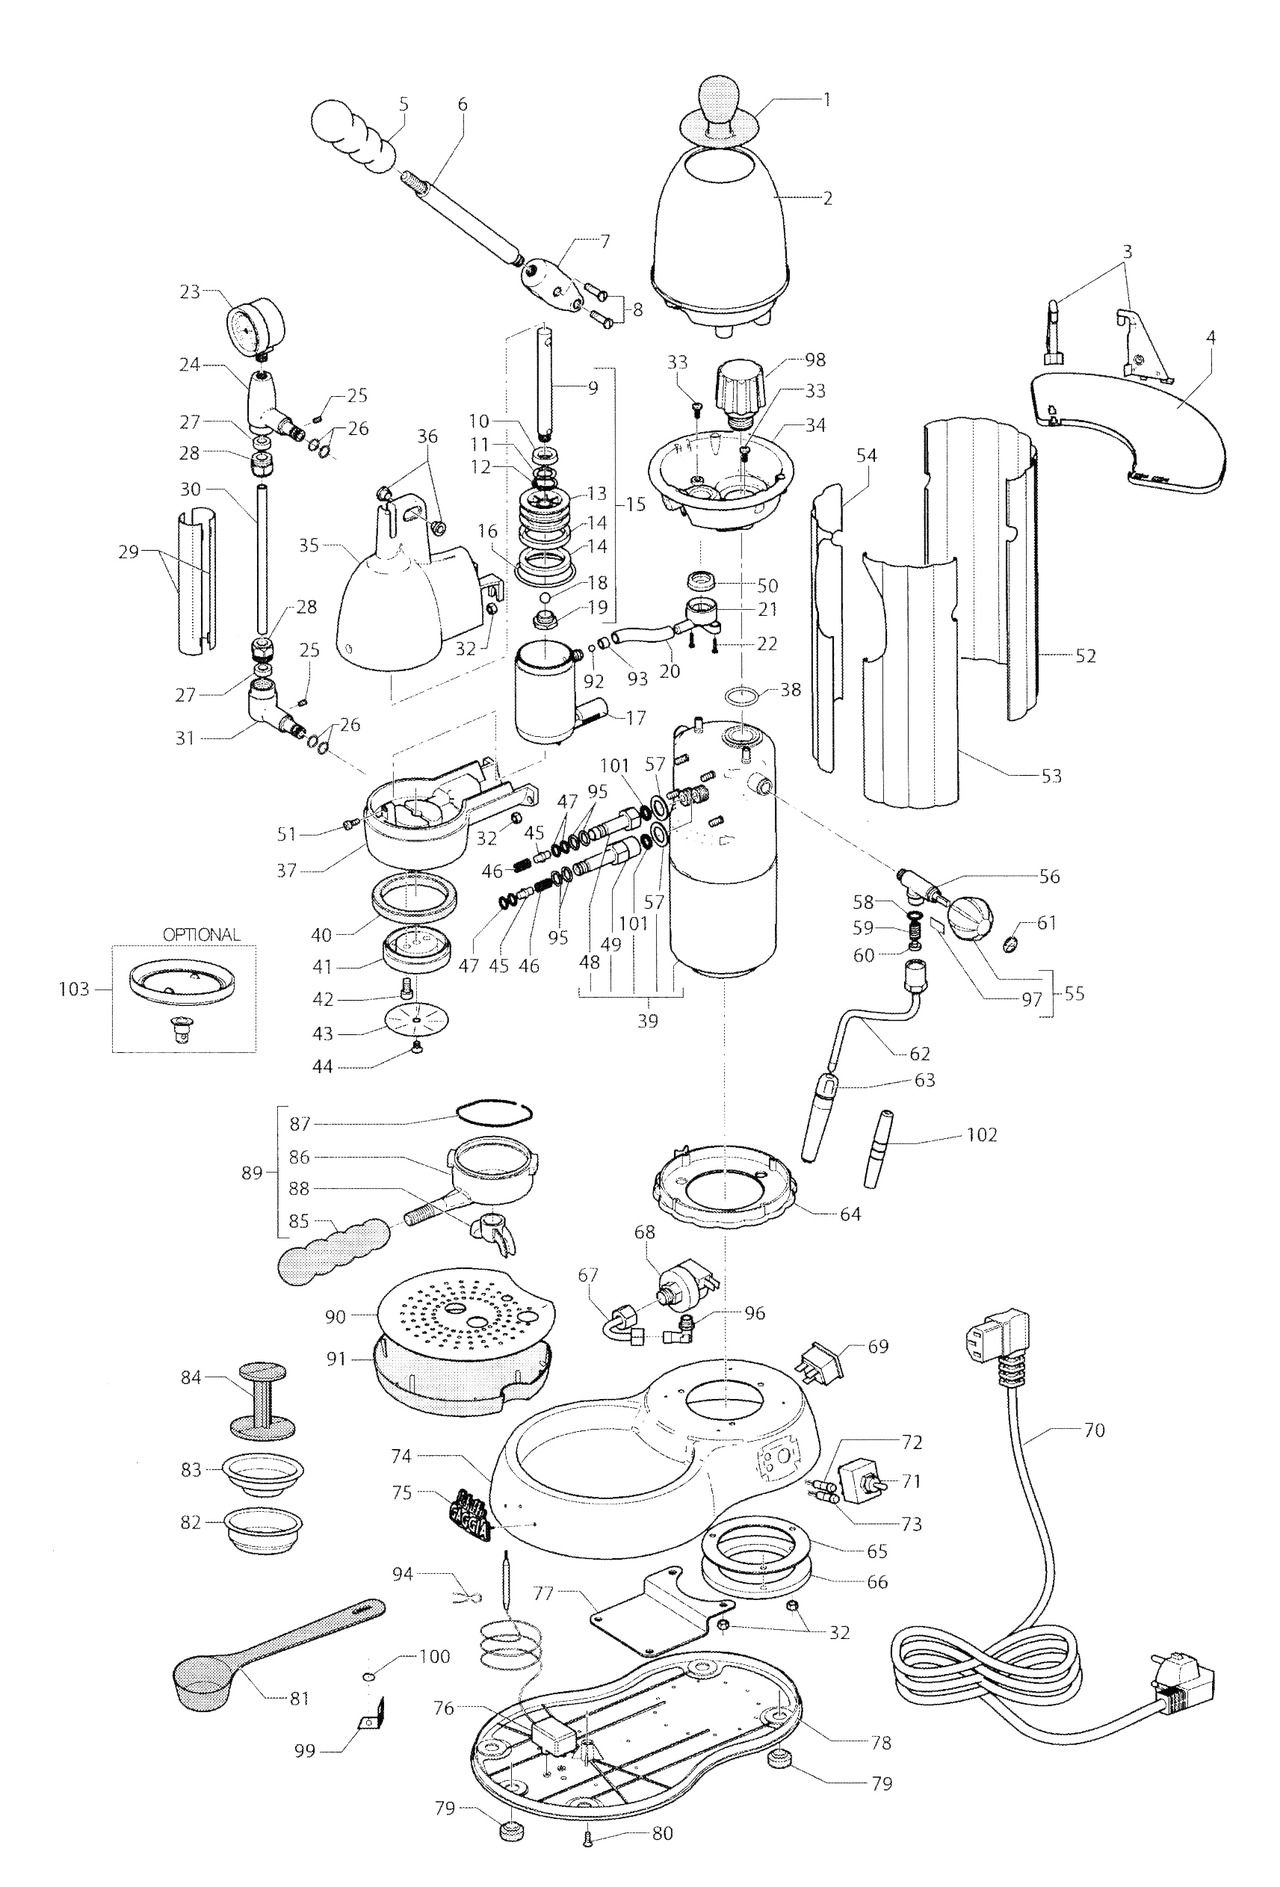 Keurig K150 Parts Diagram